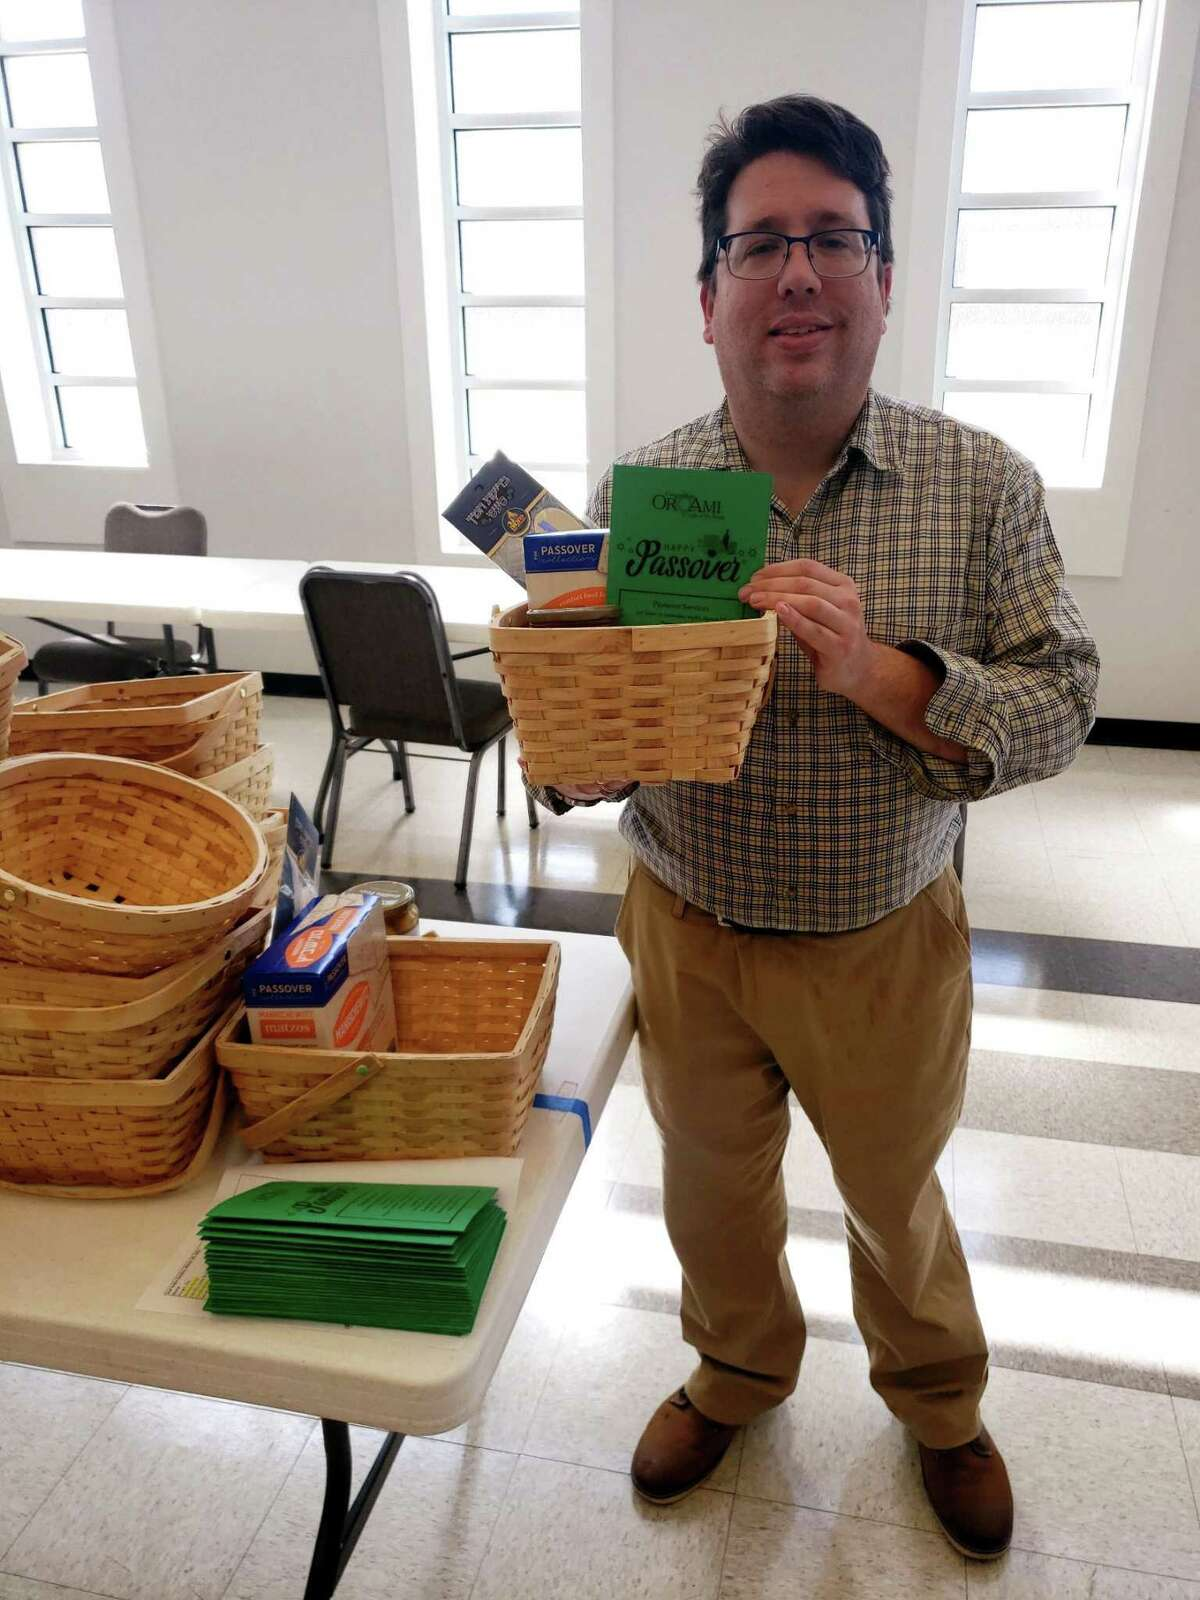 Rabbi Gideon Estes of Congregation Or Ami prepares Passover kits for the communal Seder that will be held through Zoom on Sunday, March 28.